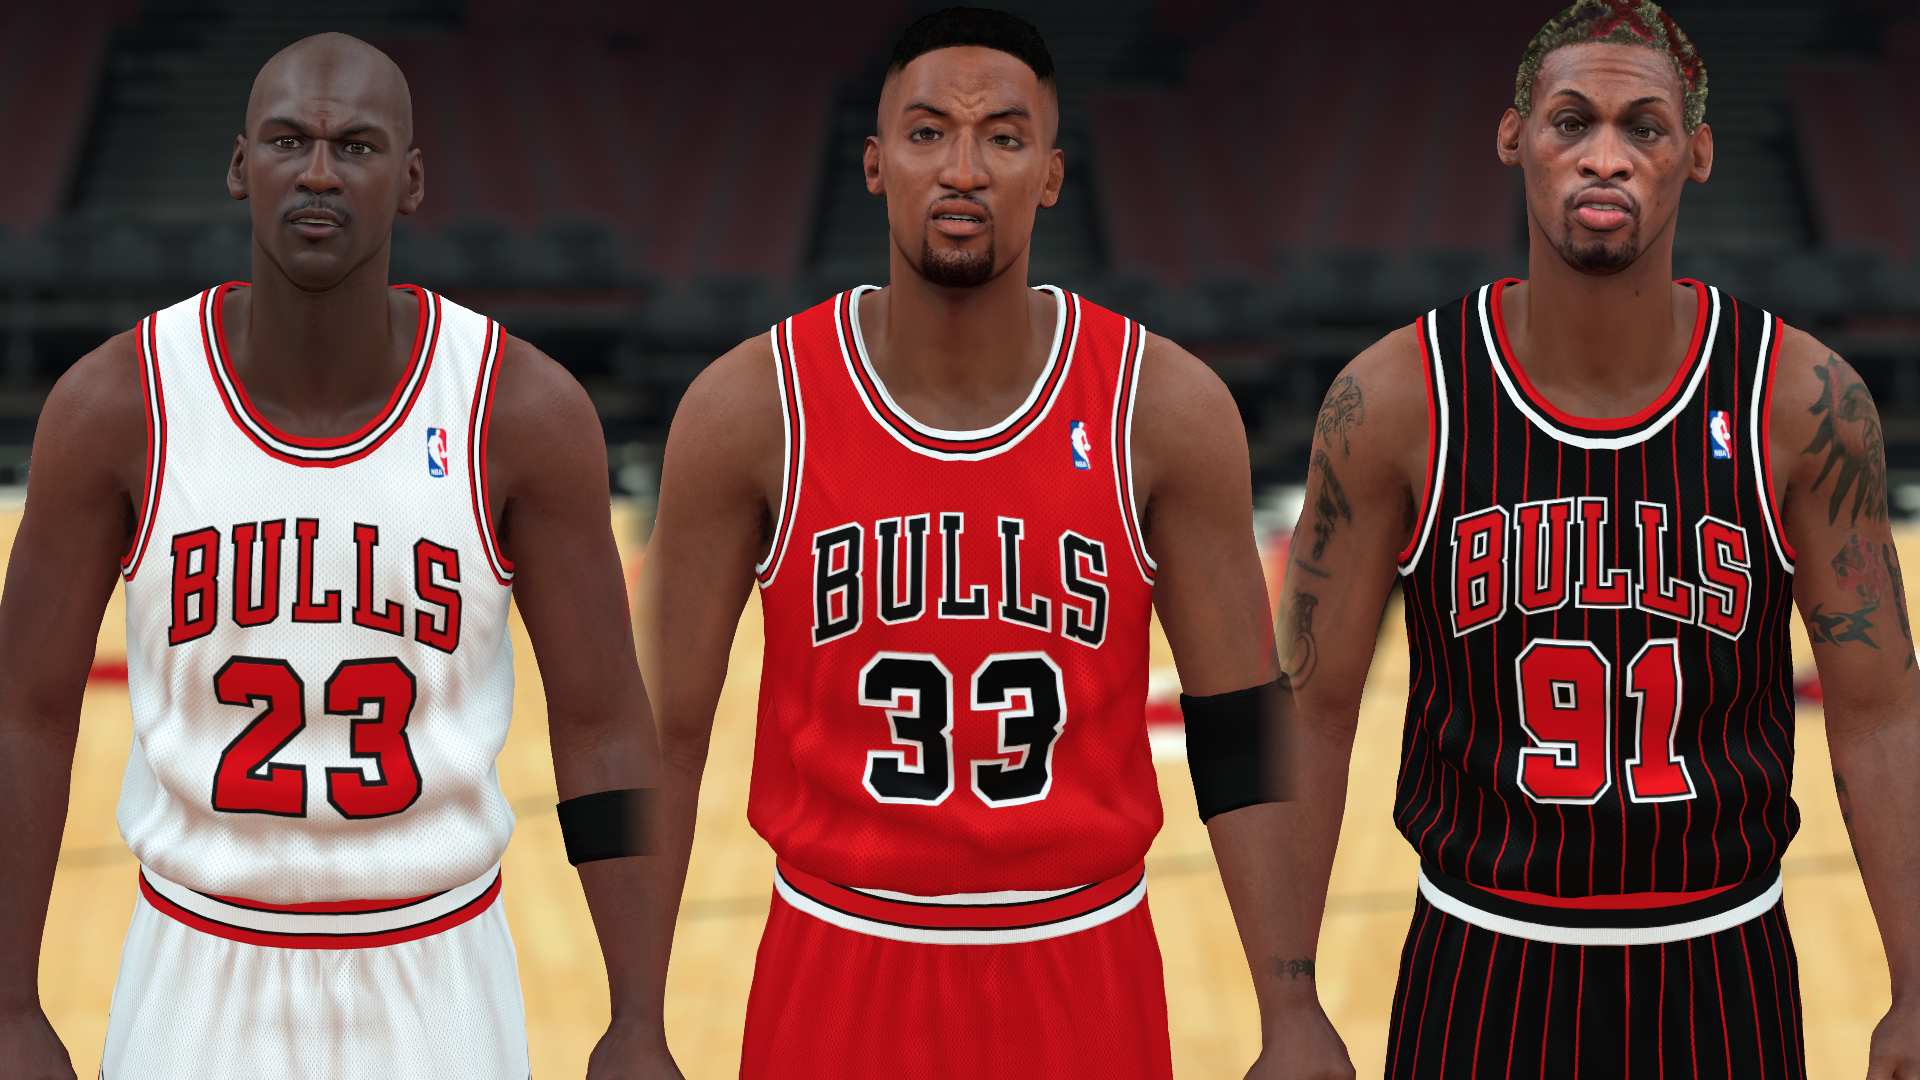 1995-1996 Bulls Jerseys - PeacemanNOT